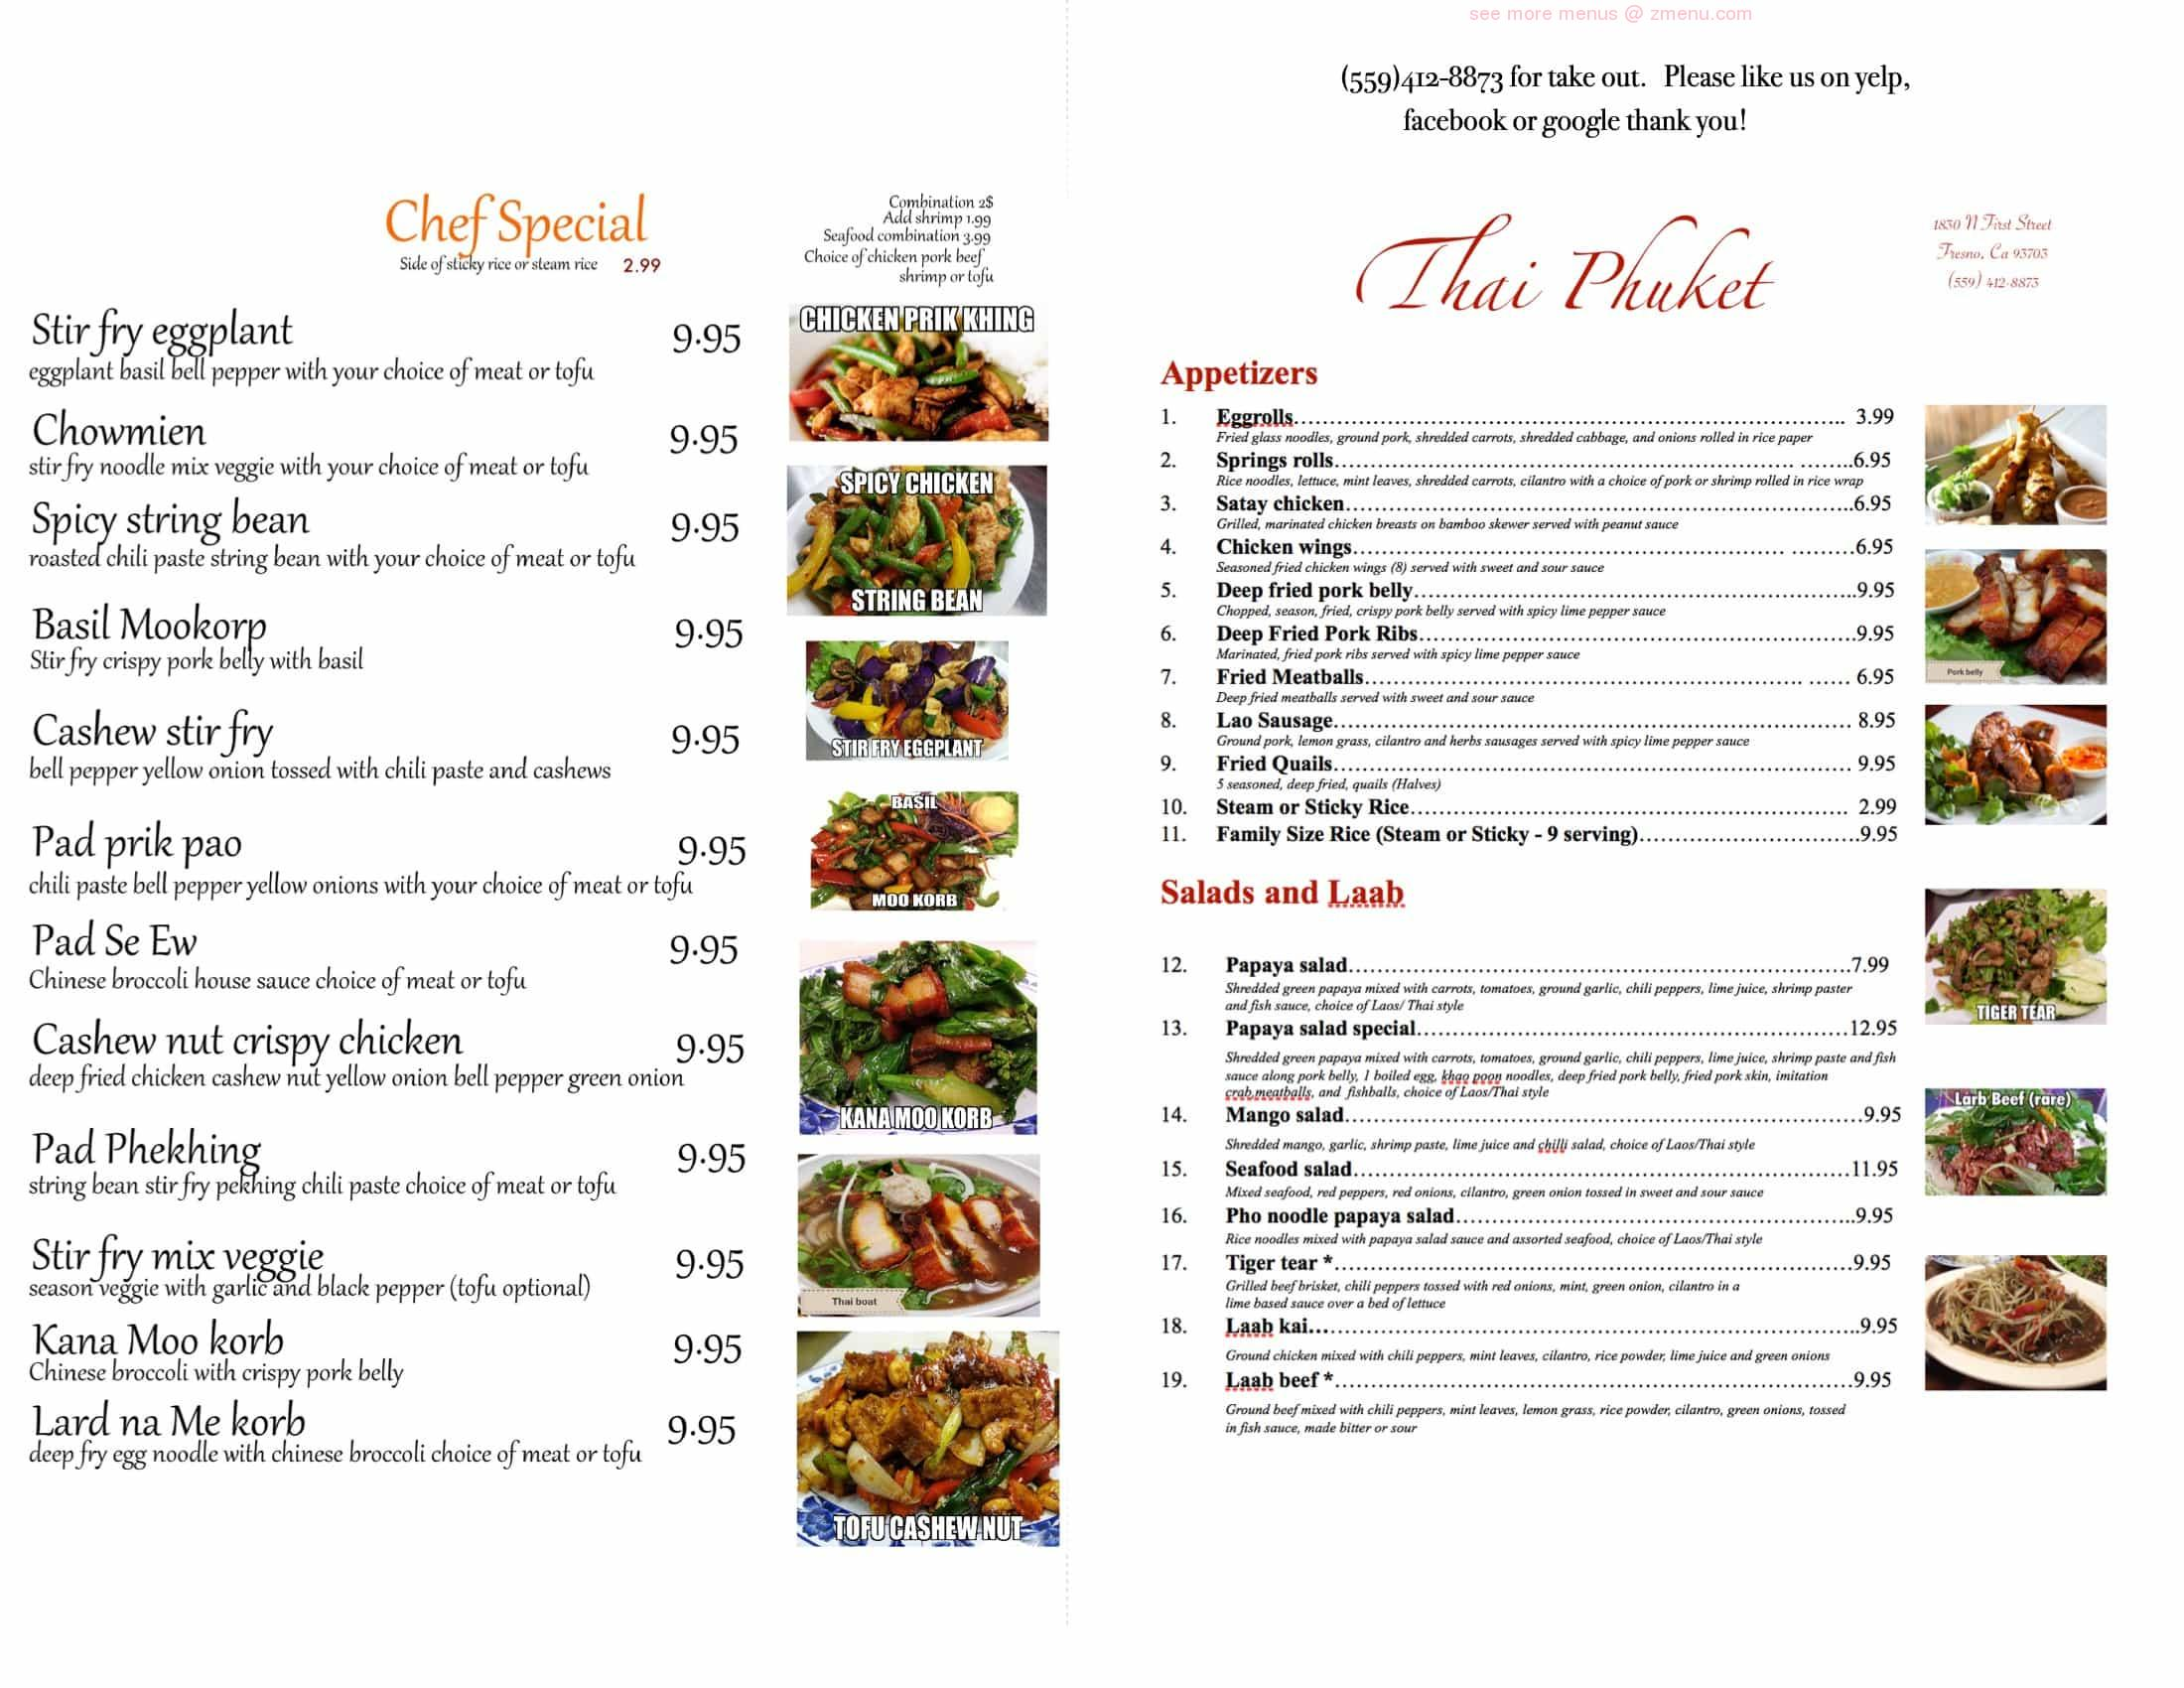 Online Menu of Thai Phuket Restaurant Restaurant, Fresno, California, 93703  - Zmenu